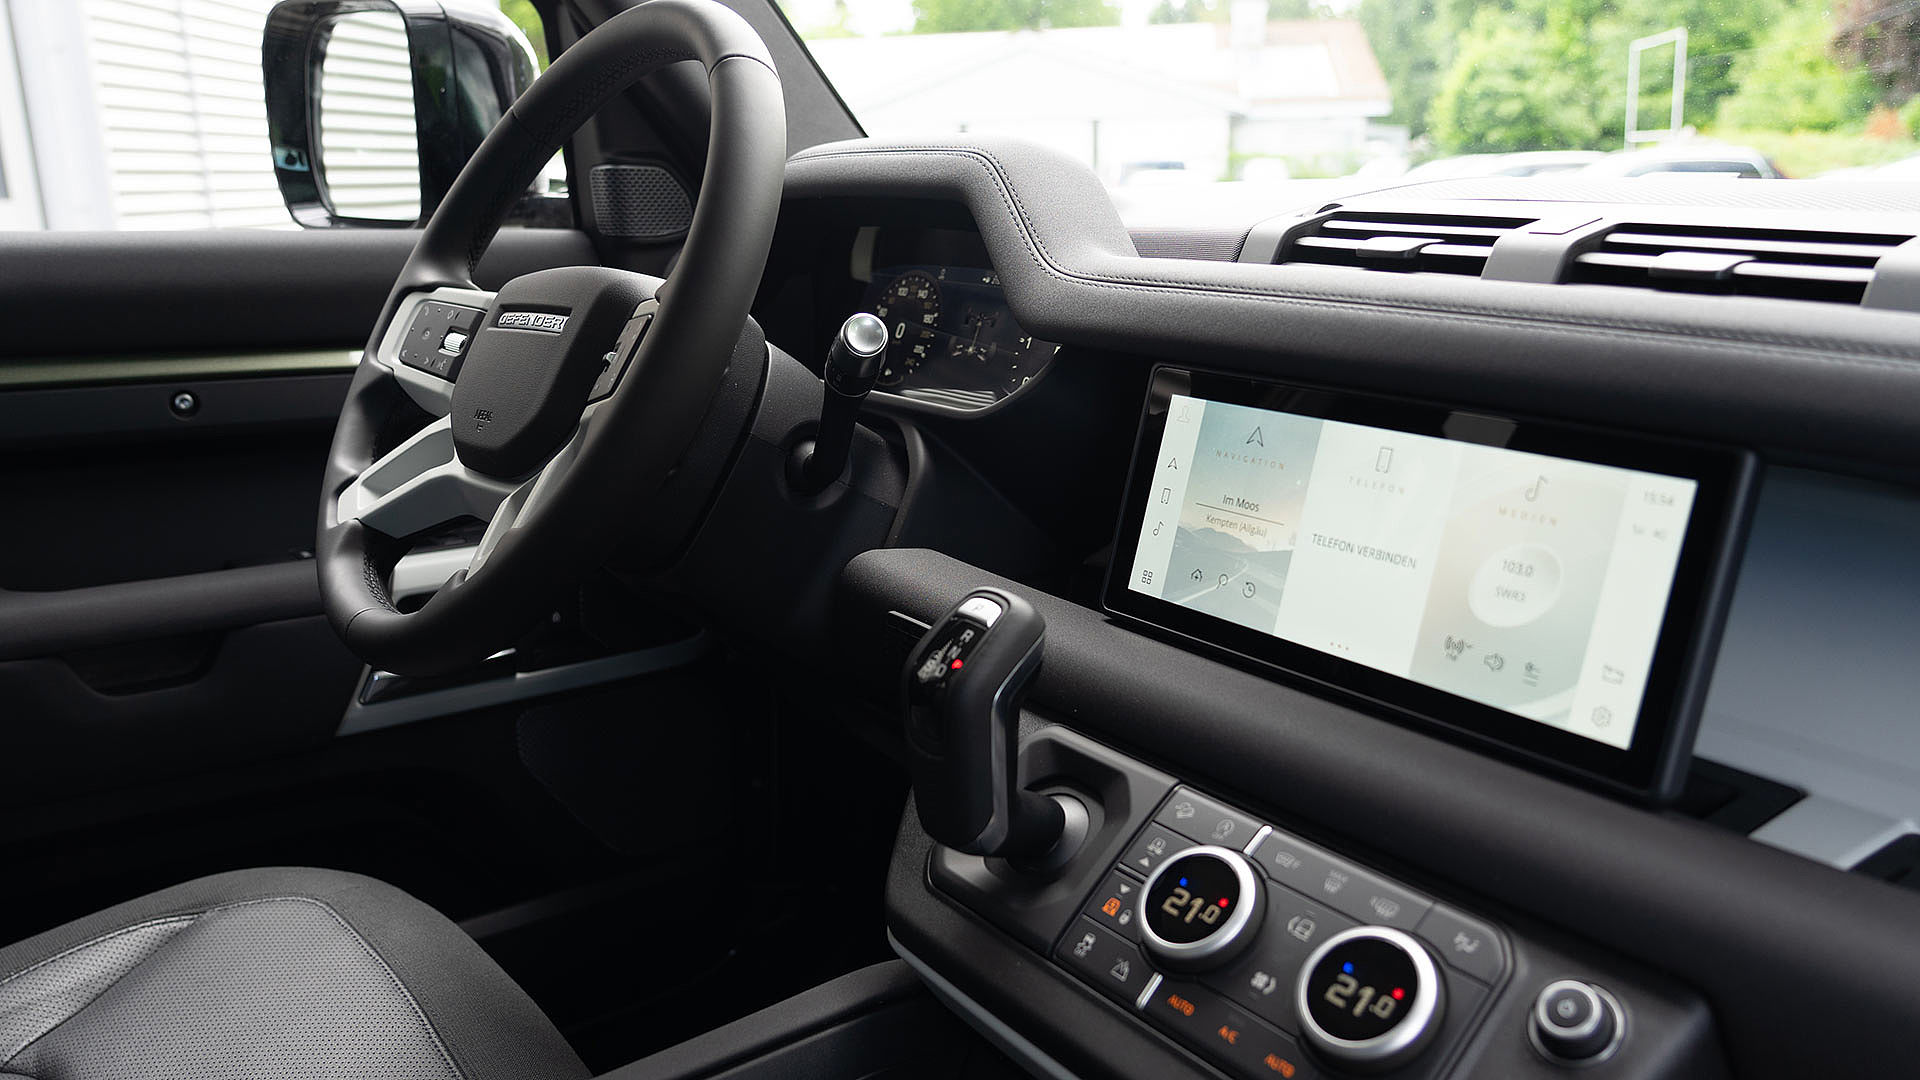 Land Rover Defender Cockpit